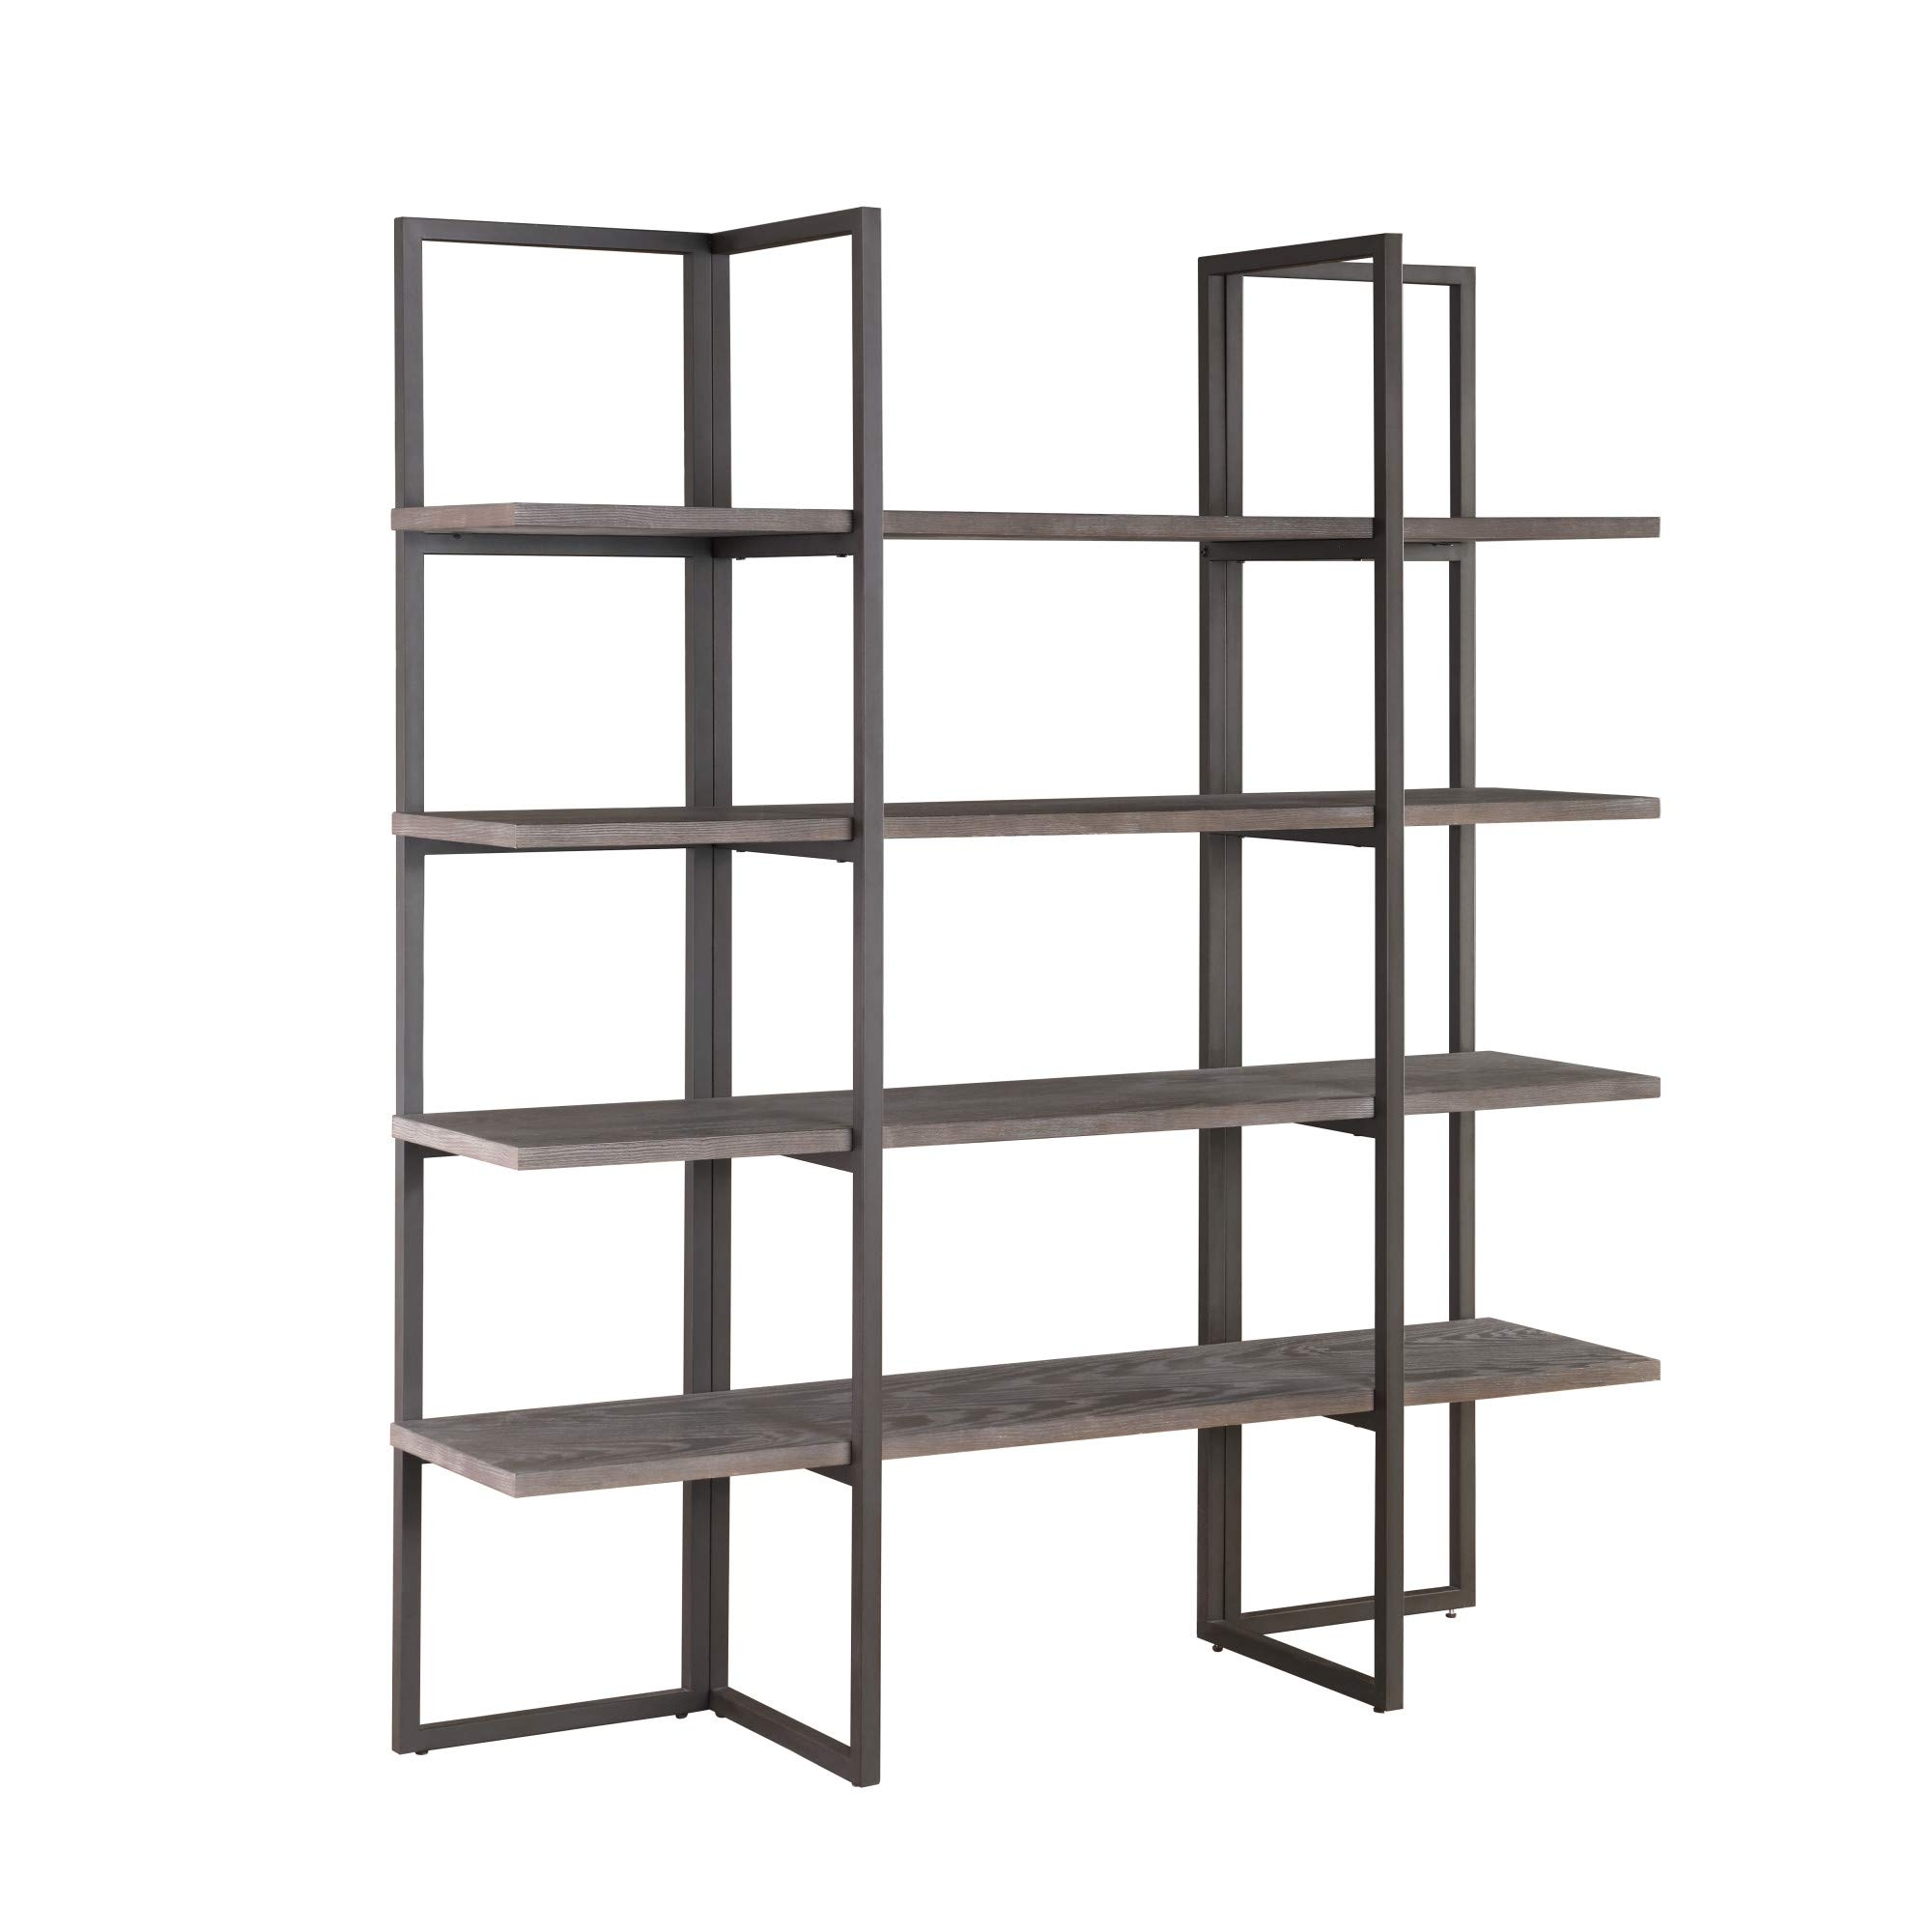 Zeke 60'' Bookcase in Rocky Mountain Gray with Four Wood Shelves And Metal Frame, by Artum Hill